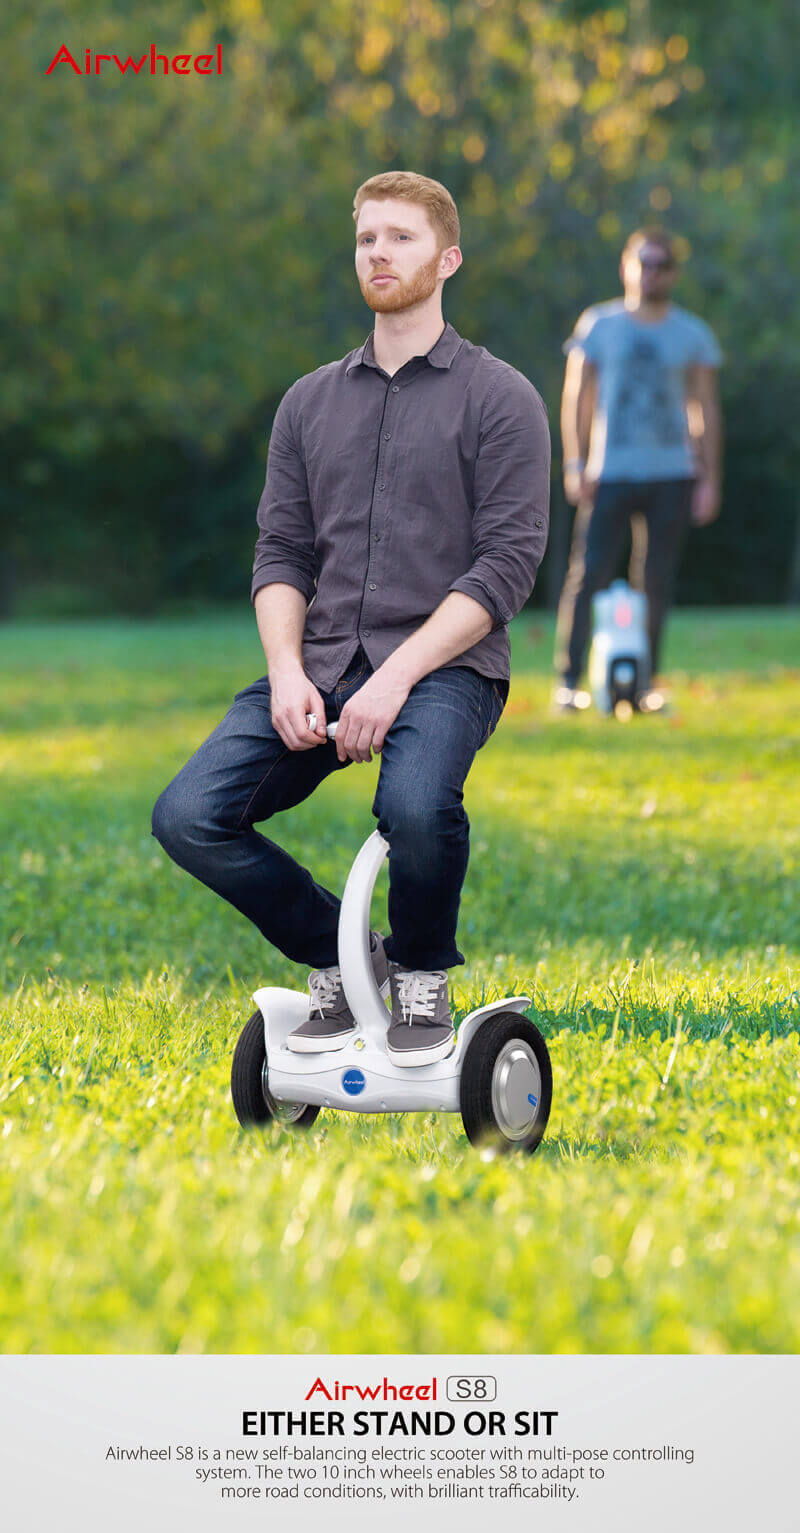 http://www.airwheel.net/scooters/airwheel-S8-2.jpg